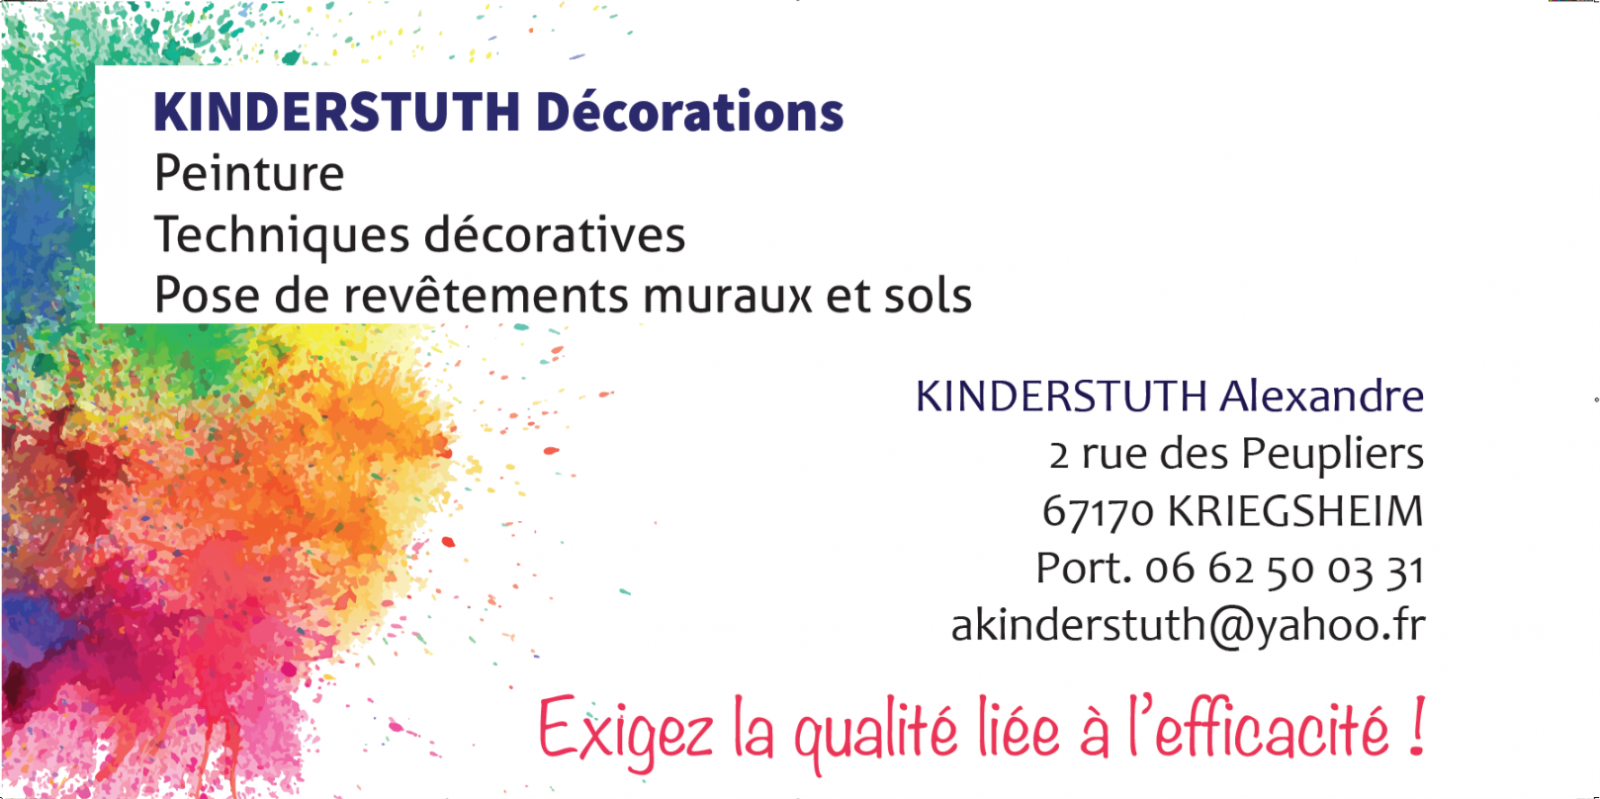 KINDERSTUTH Décorations